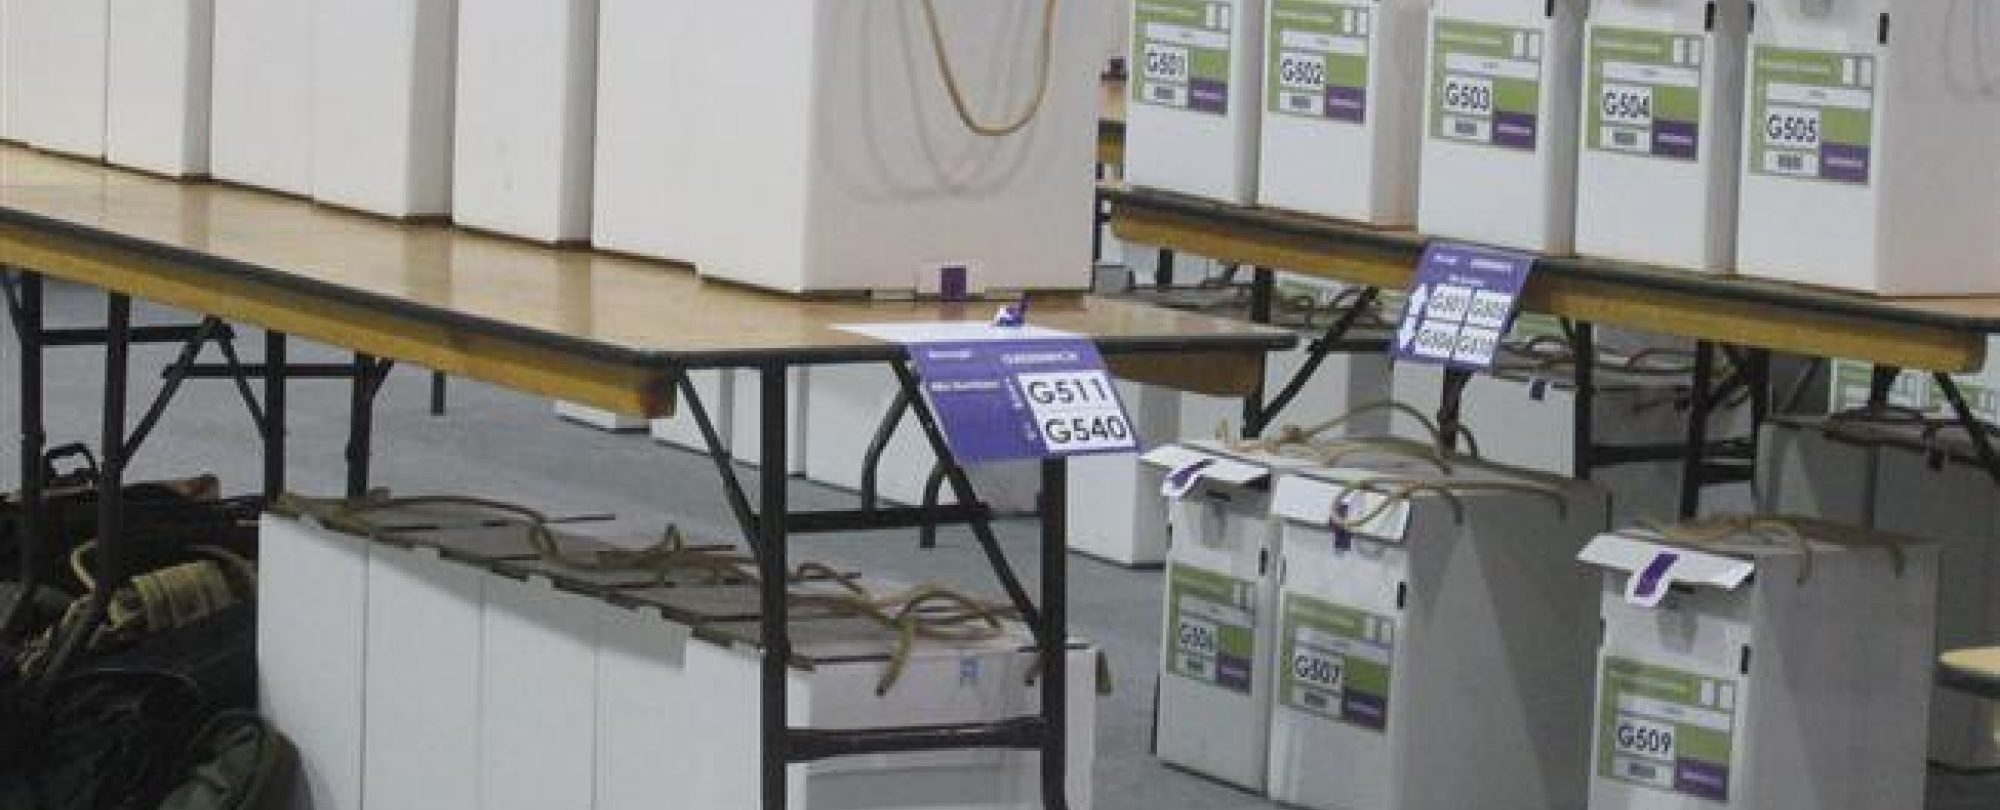 Photo of Election boxes waiting to be tallied.